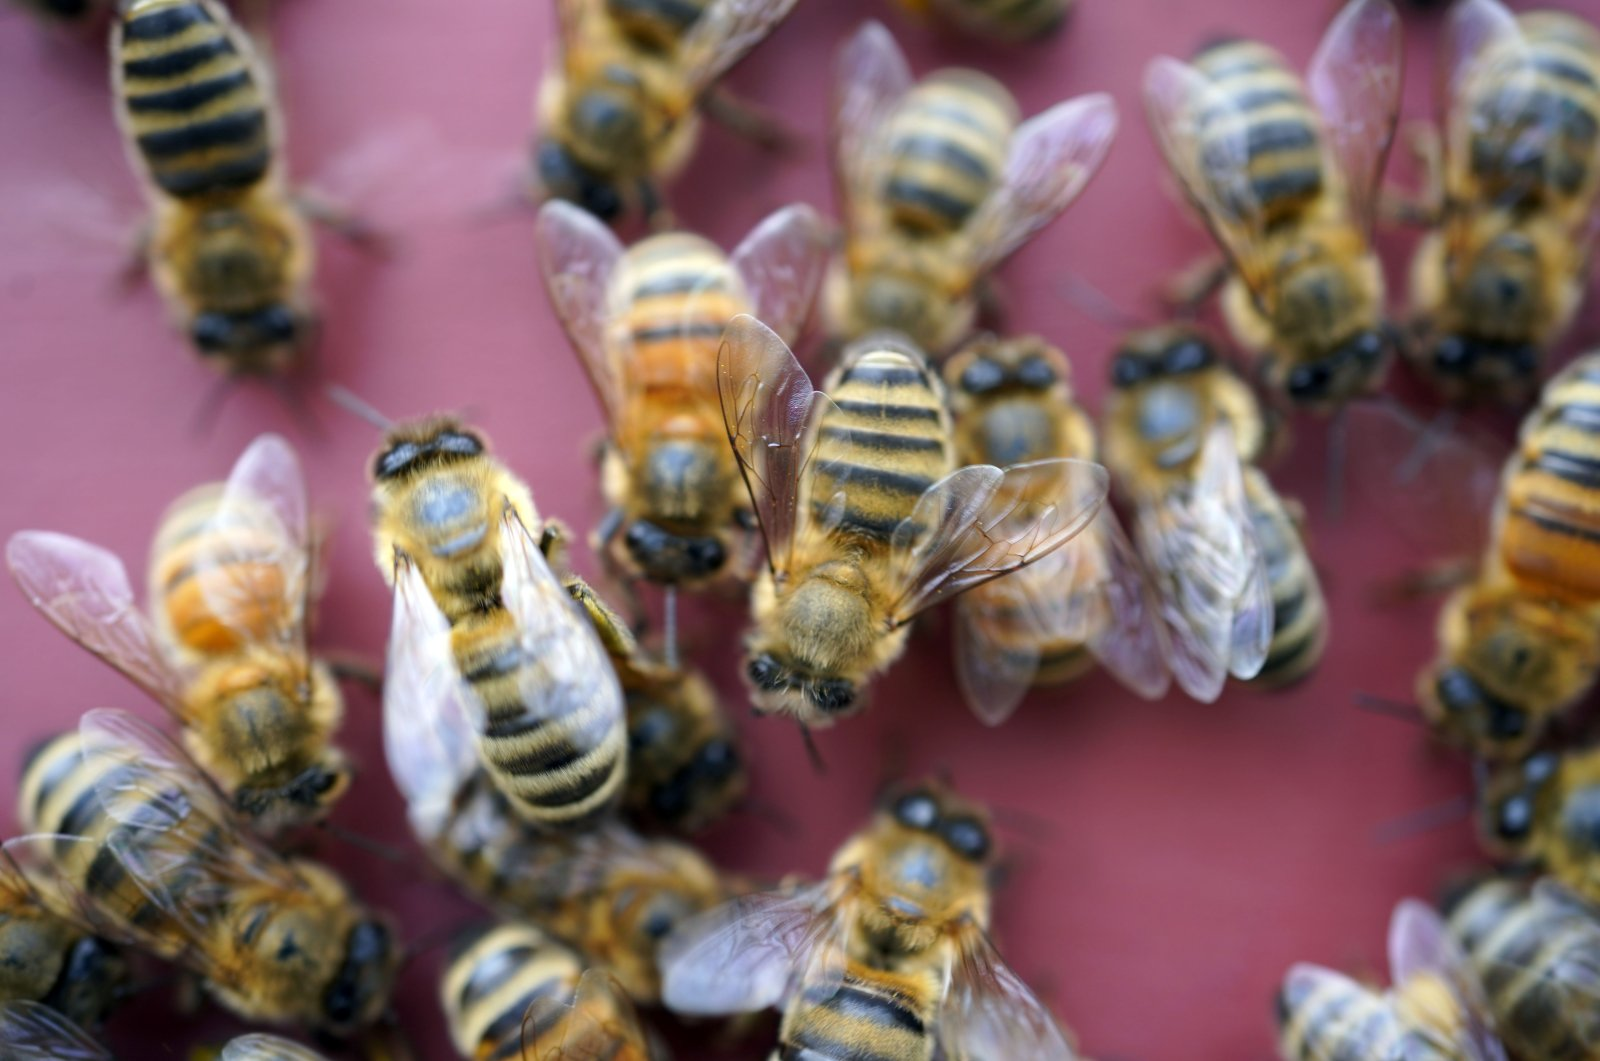 Beekeeper Joe Moncecchi's bees enter a hive as he inspects and cleans his hives at Hancock Shaker Village in Pittsfield, Mass., U.S., April 28, 2021. (AP Photo)